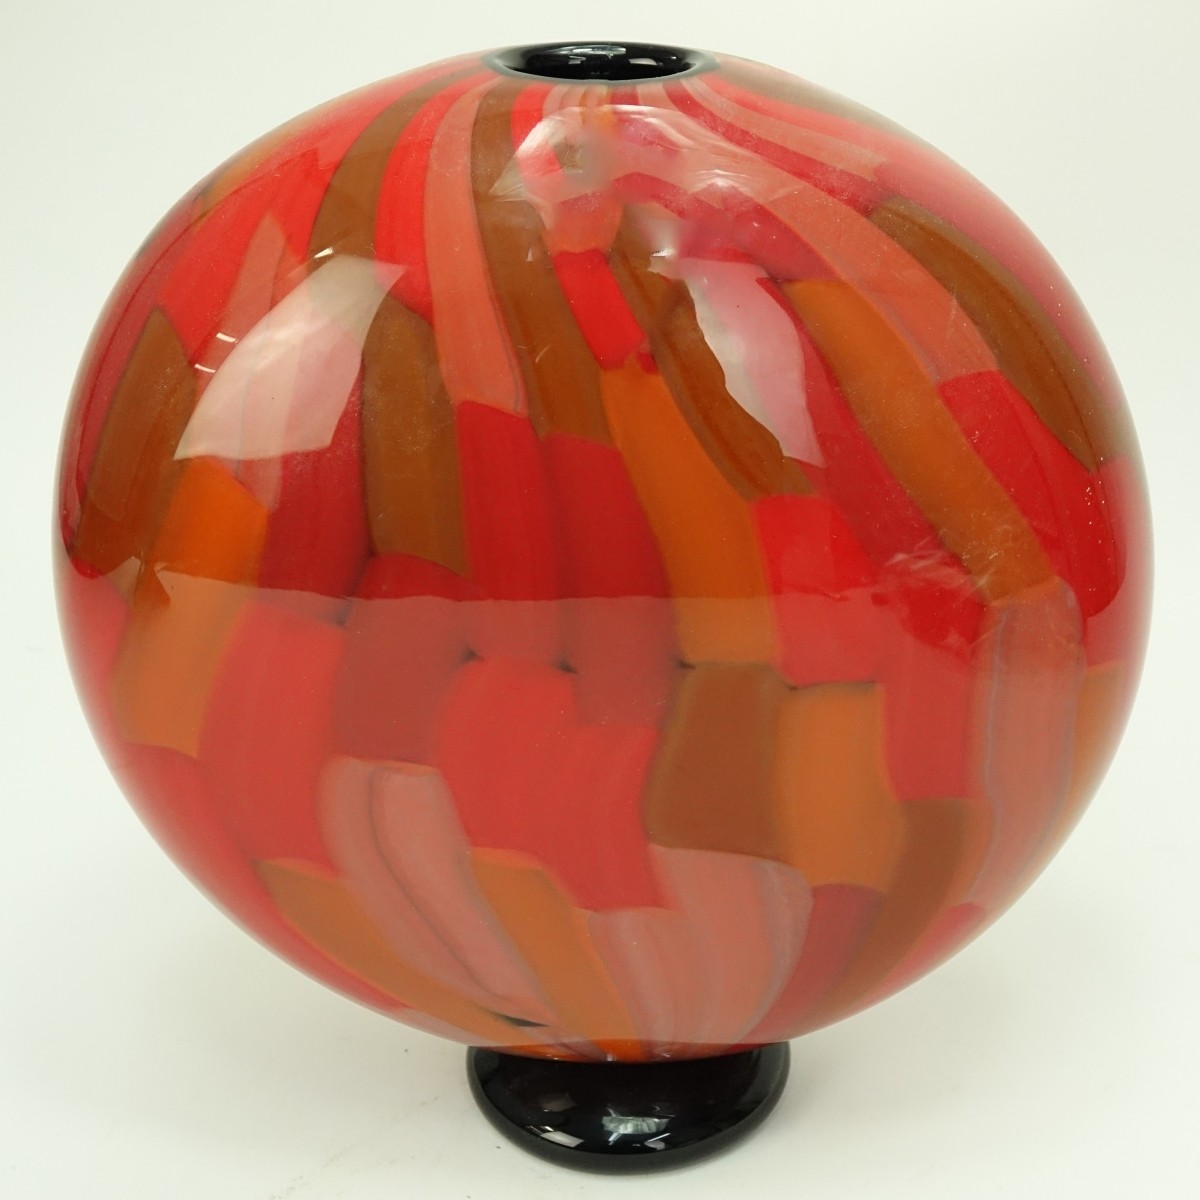 Murano Seguso Art Glass Vase